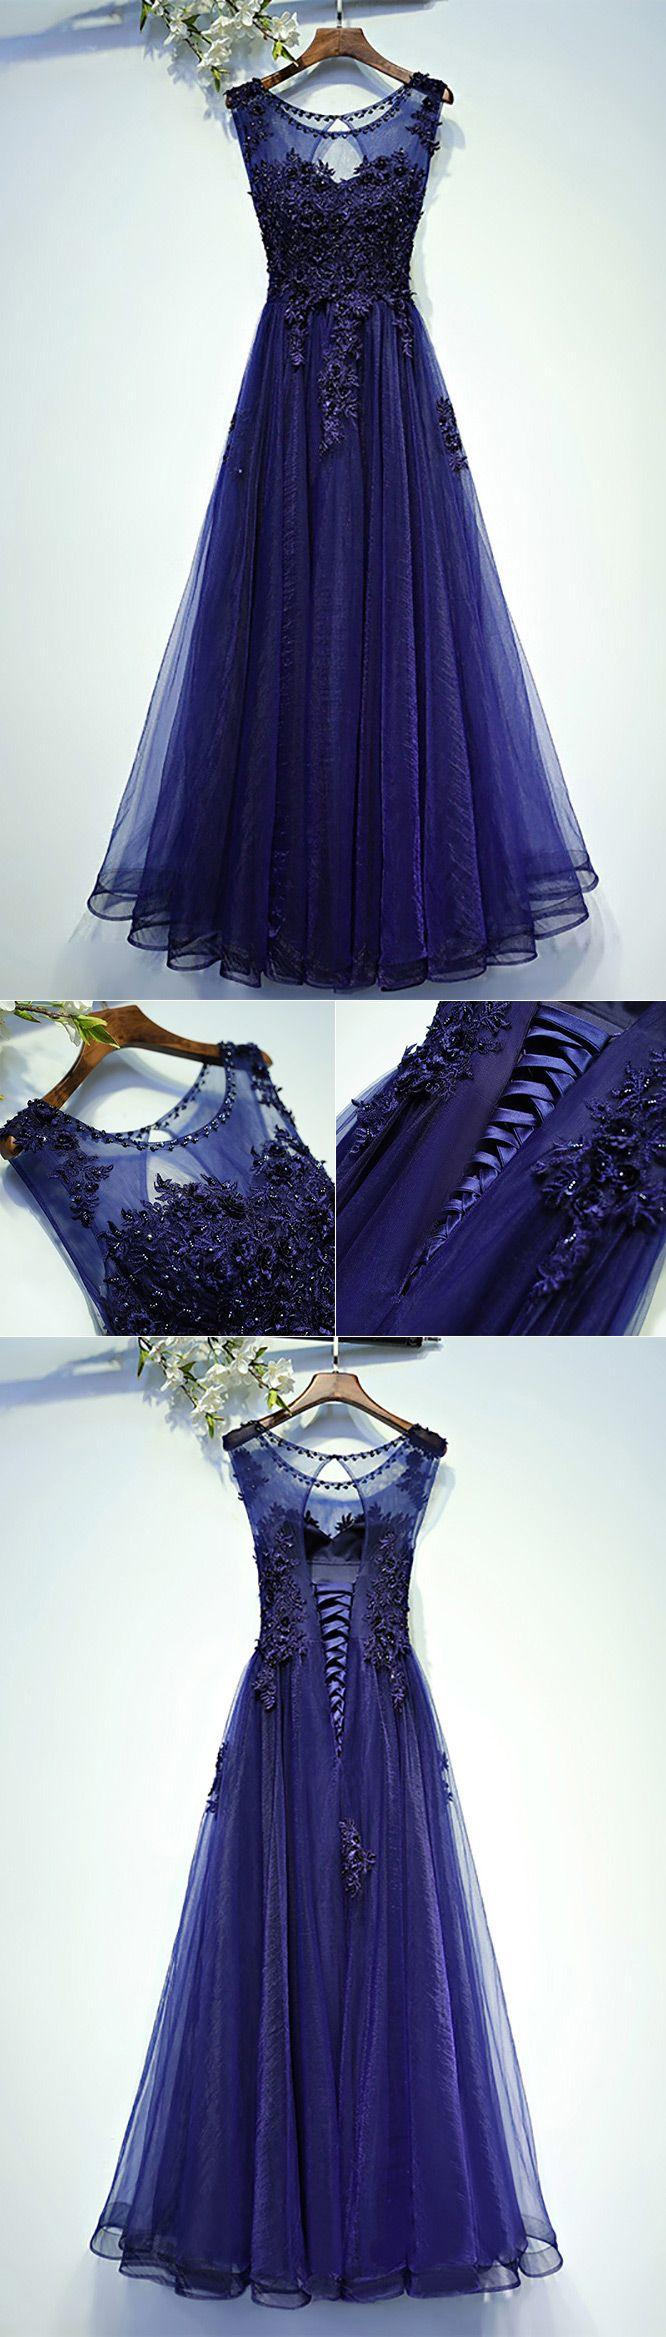 Mariage - Navy Blue Lace Tulle Long Prom Dress A Line Sleeveless - $118 #MYX18019 - SheProm.com